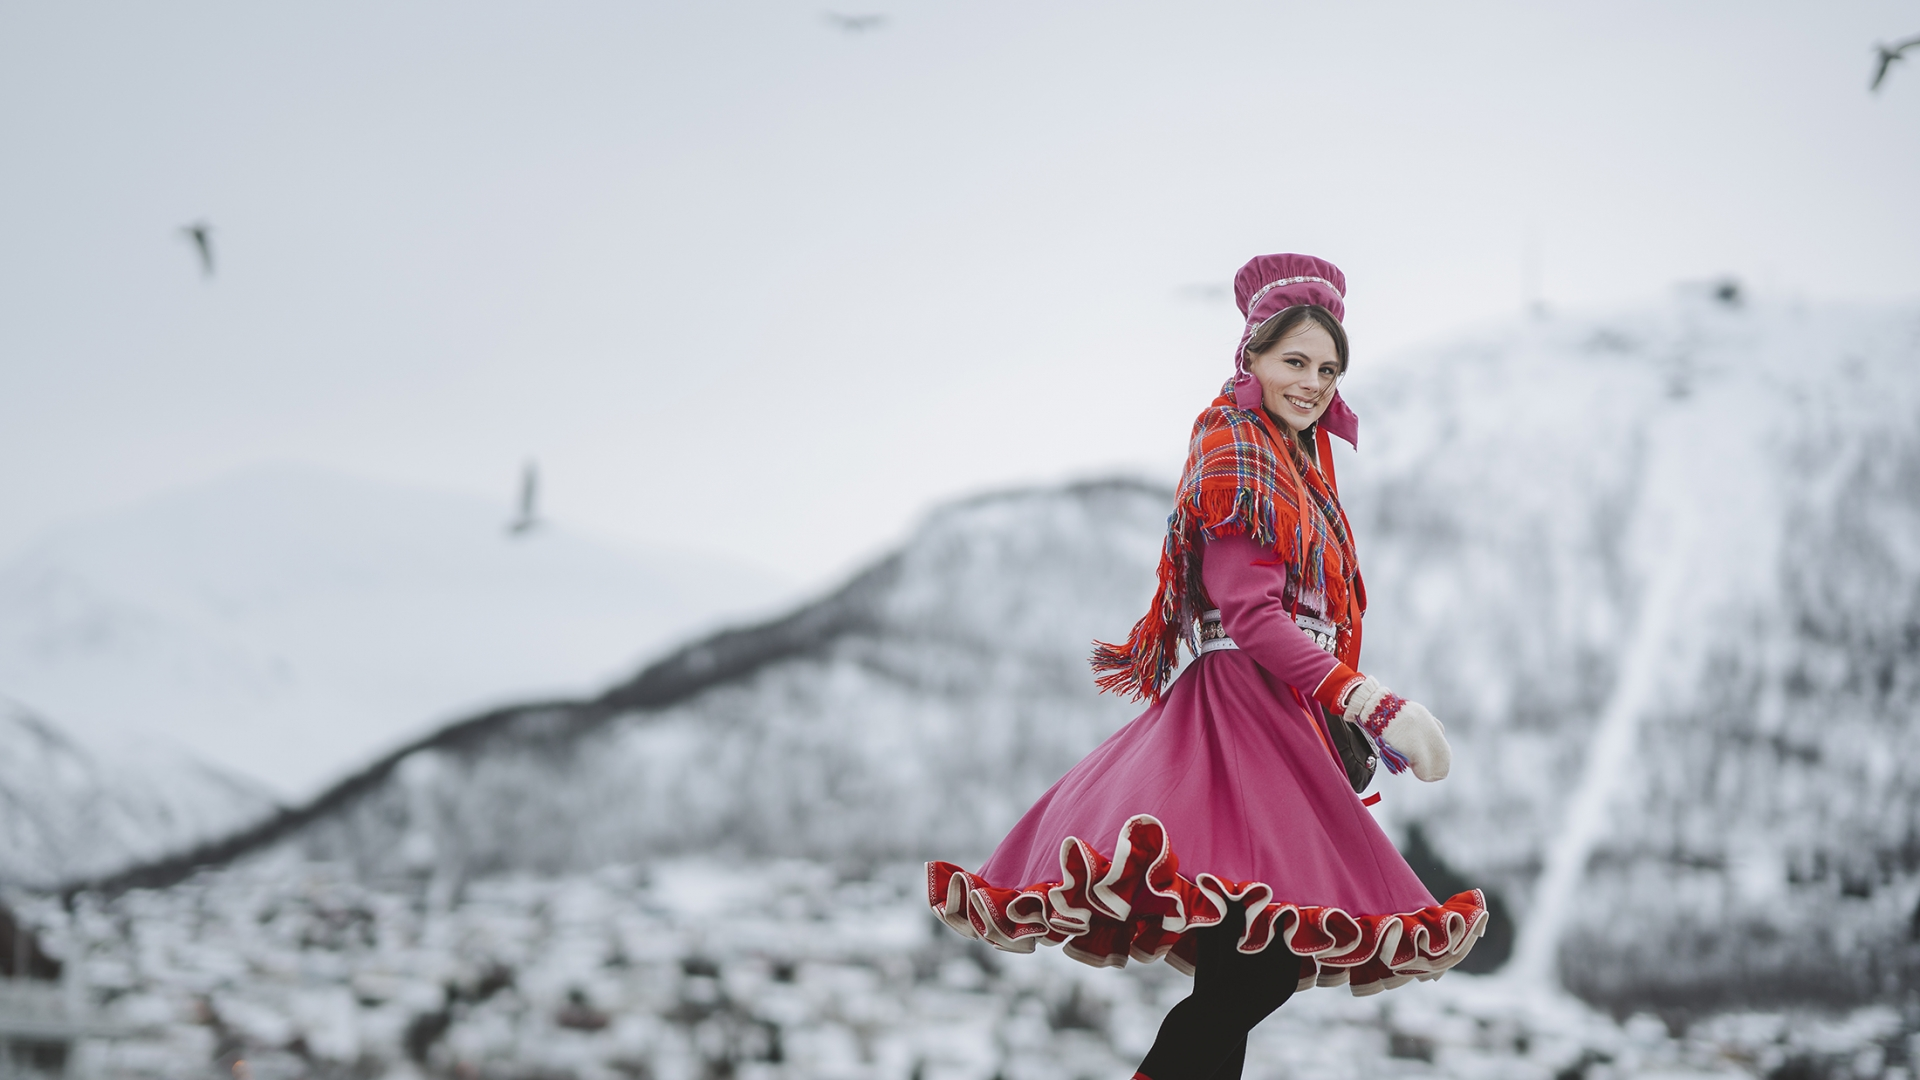 Mariann Josefsen in Sami dress with mountains in the background